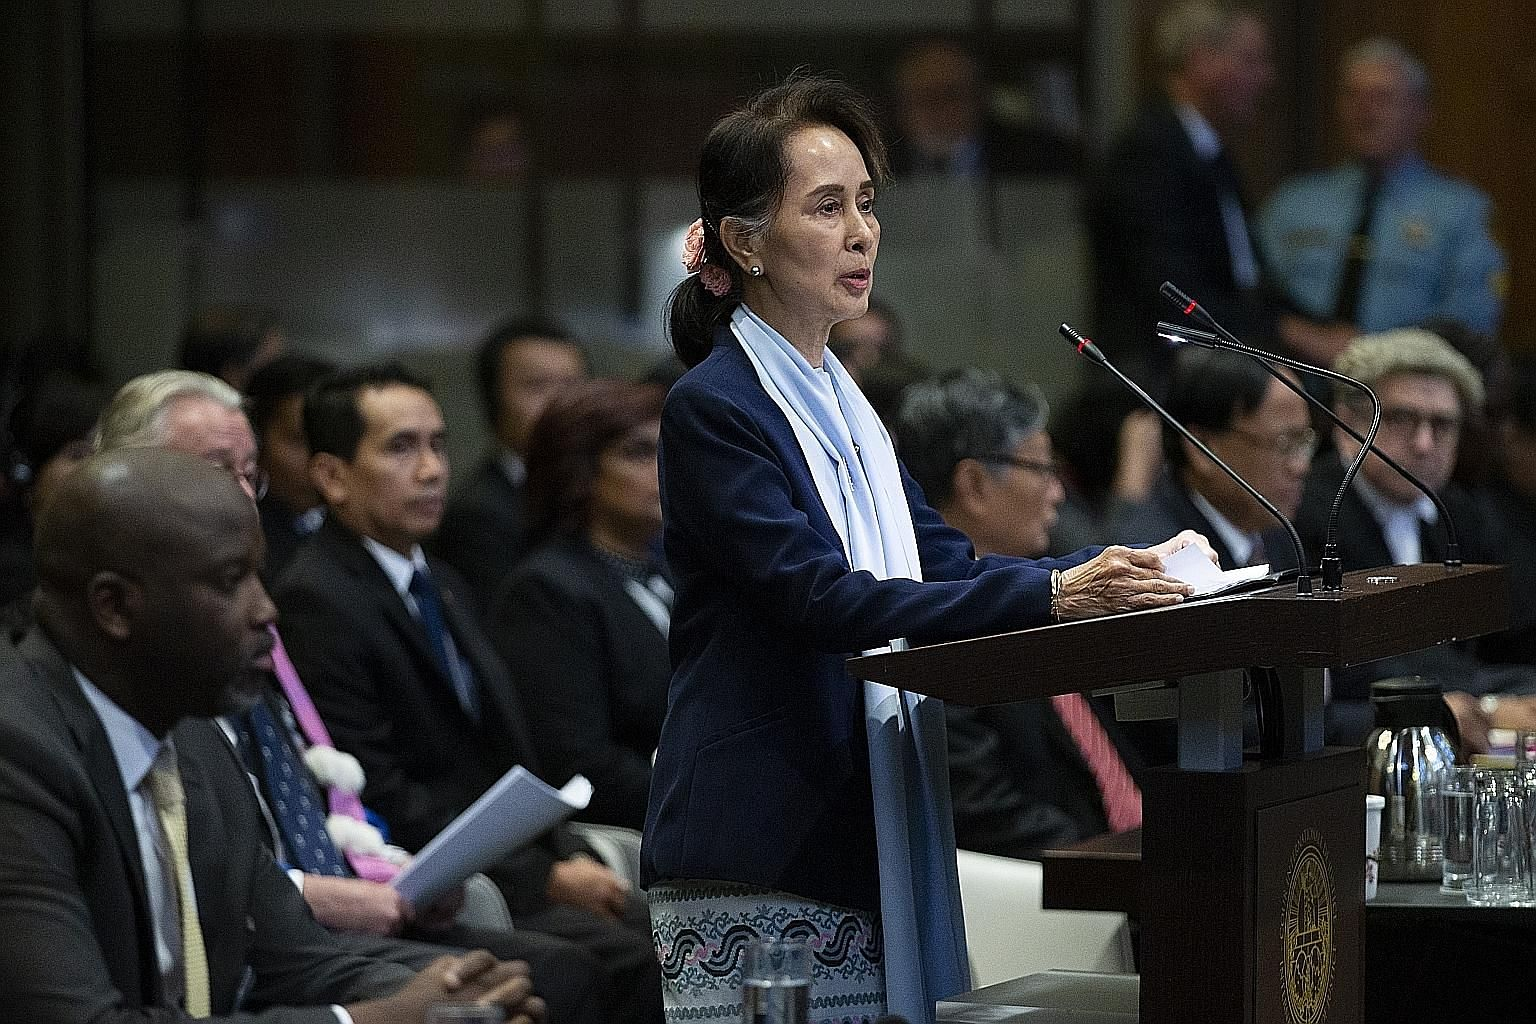 Myanmar's de facto leader Aung San Suu Kyi addressing judges of the International Court of Justice as Gambia's Justice Minister Abubacarr Tambadou (left) listened, on the second day of three days of hearings in The Hague. Gambia had brought the case